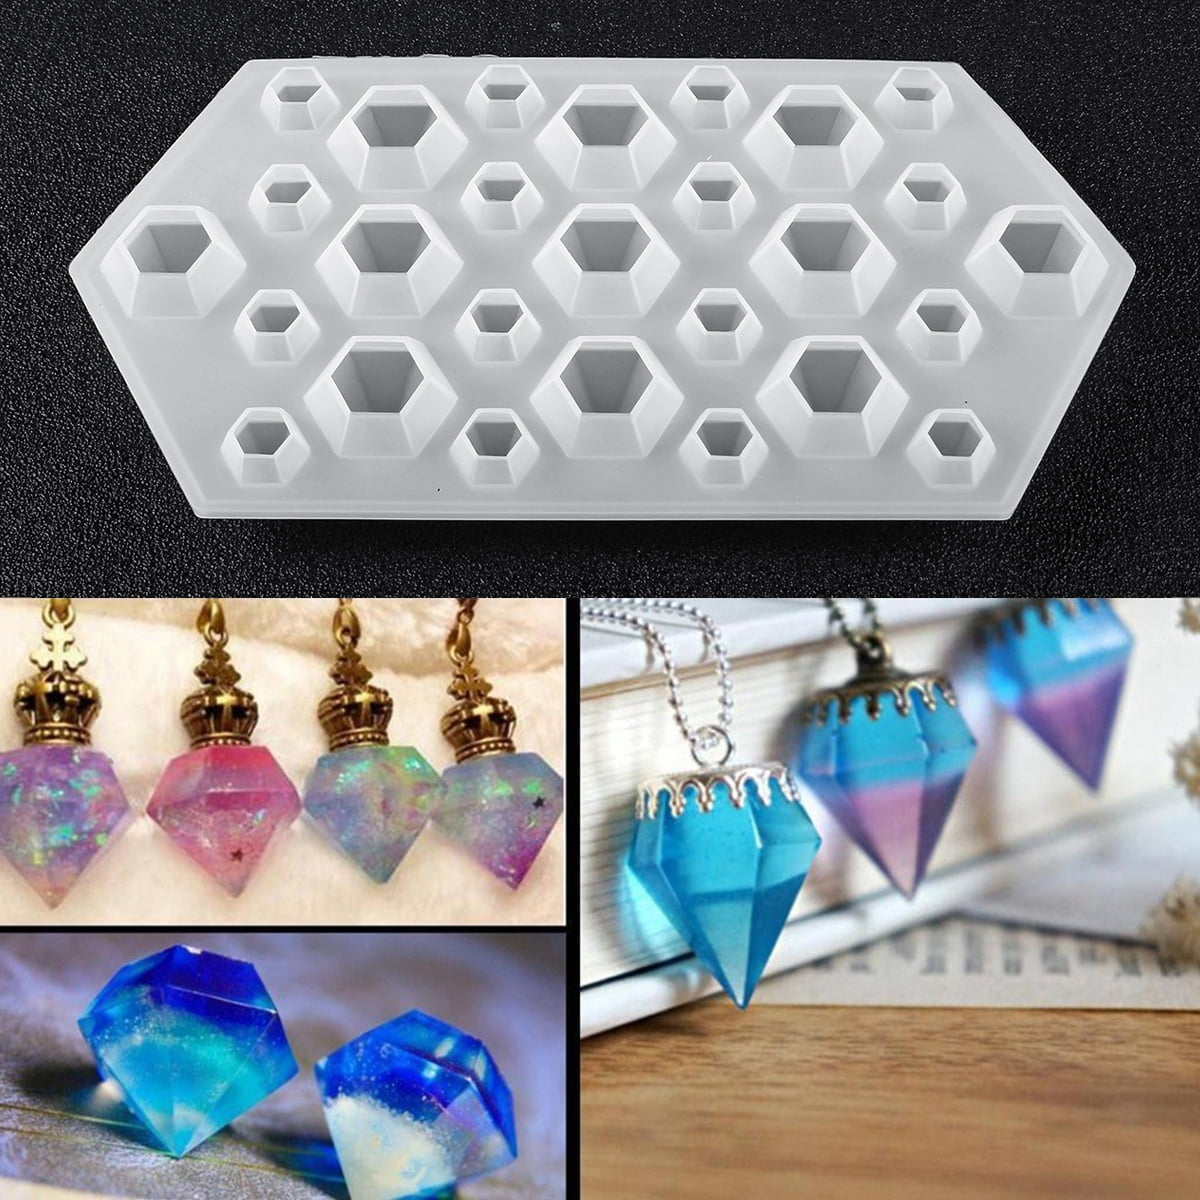 DIY Diamond Resin Mould Jewelry Pendant Resin Casting Craft Making Molds Kit